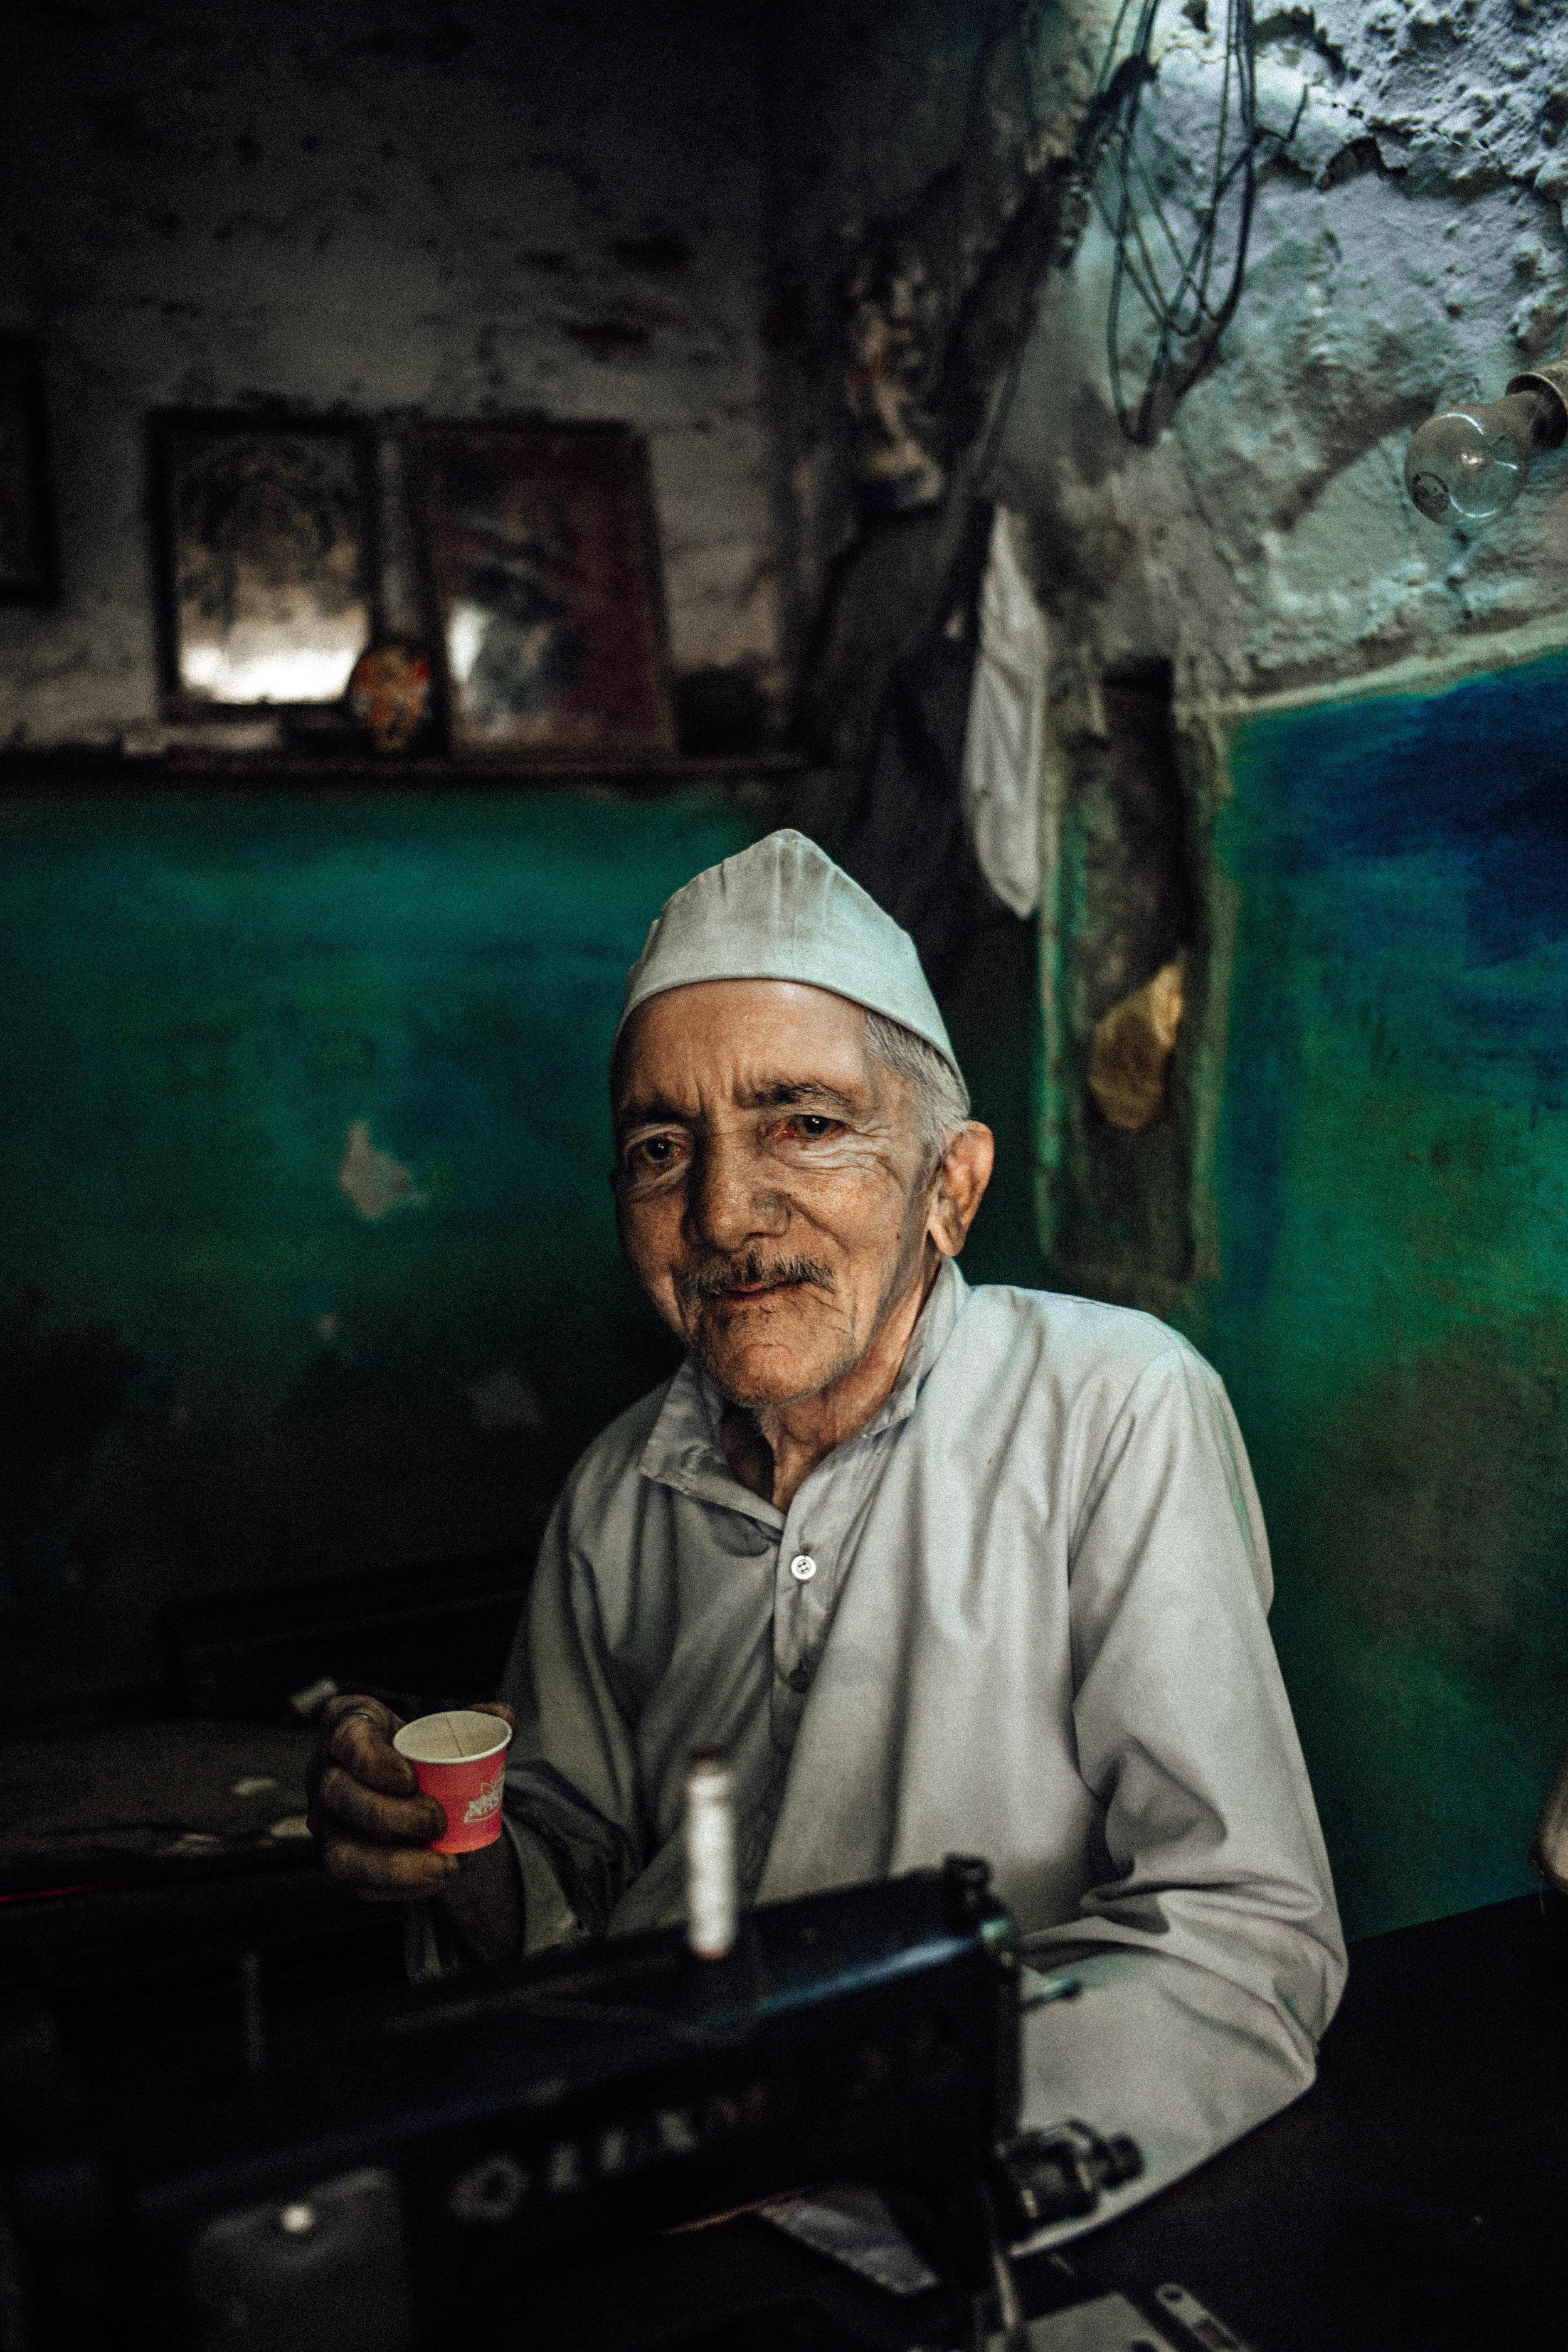 """A local street worker enjoying his cup of chai tea. A drink consumed for its healing properties and so popular you can likely find its makers known as """"Chai Wallas"""" on every street corner from the big cities to the desert outposts. -Udaipur, Rajasthan 2017"""